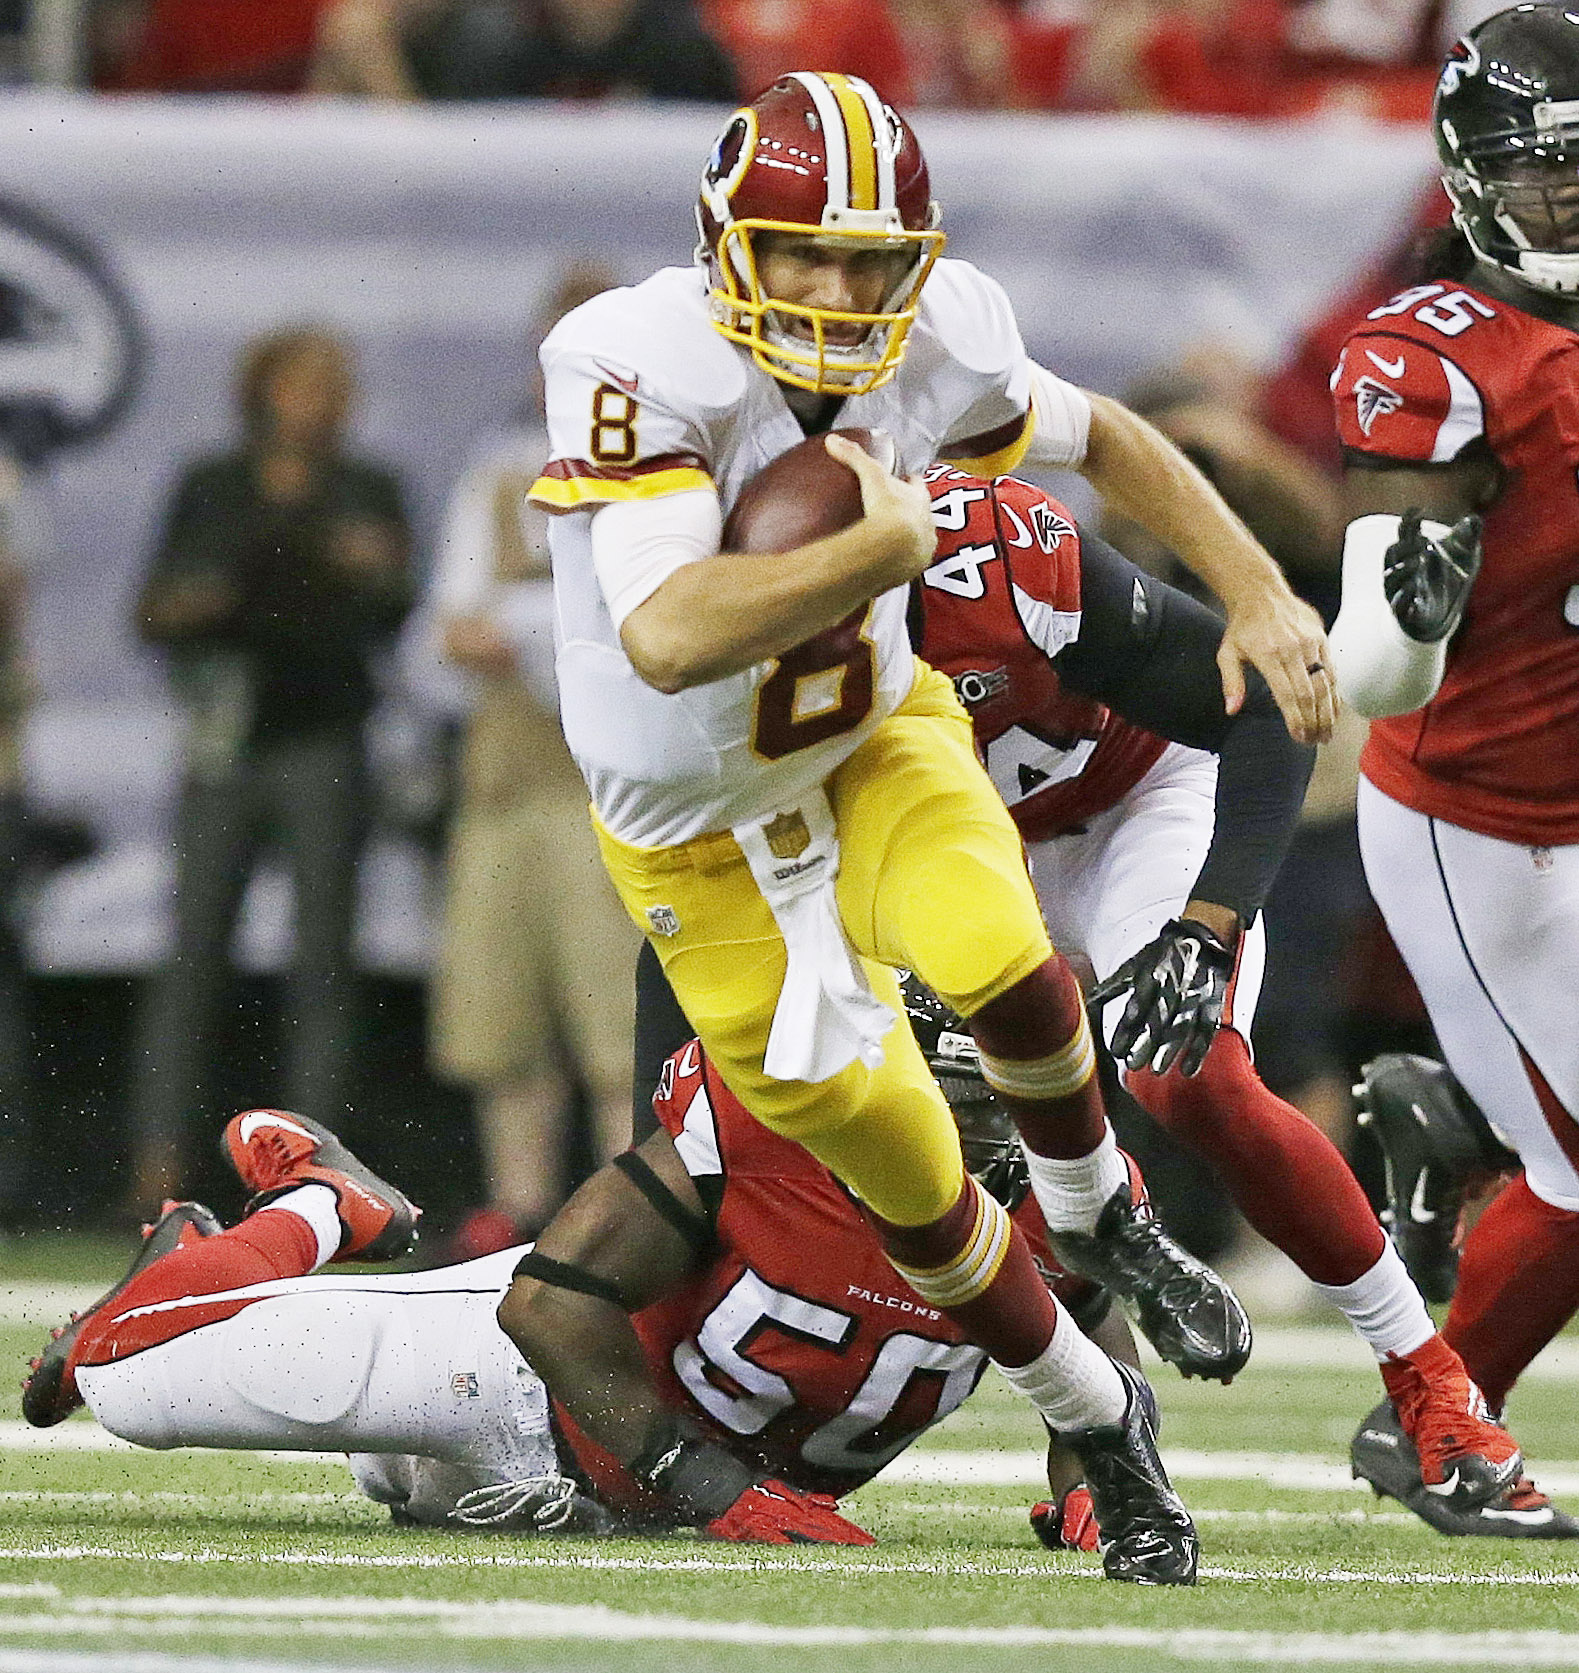 Redskins find poise and pain in OT loss to Falcons